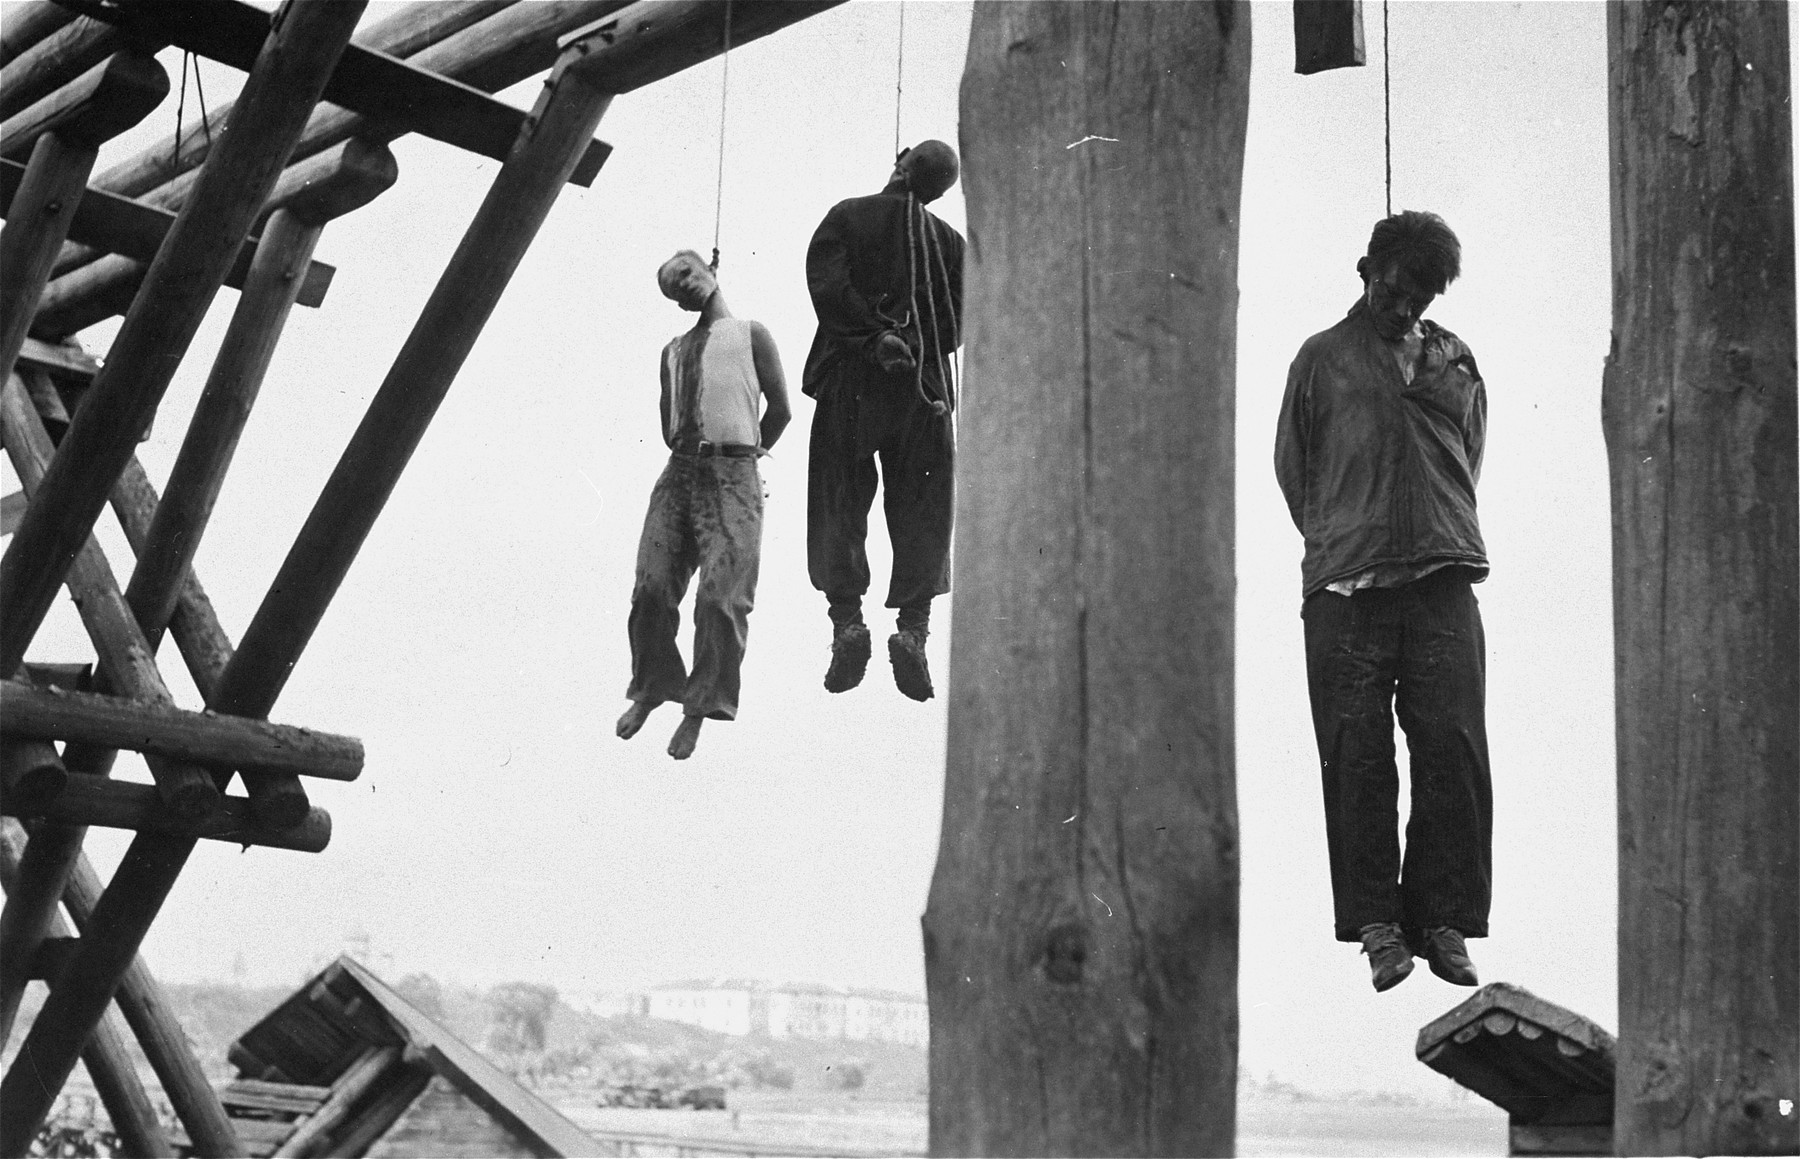 The bodies of three partisans hang from a bridge in the occupied Soviet Union.